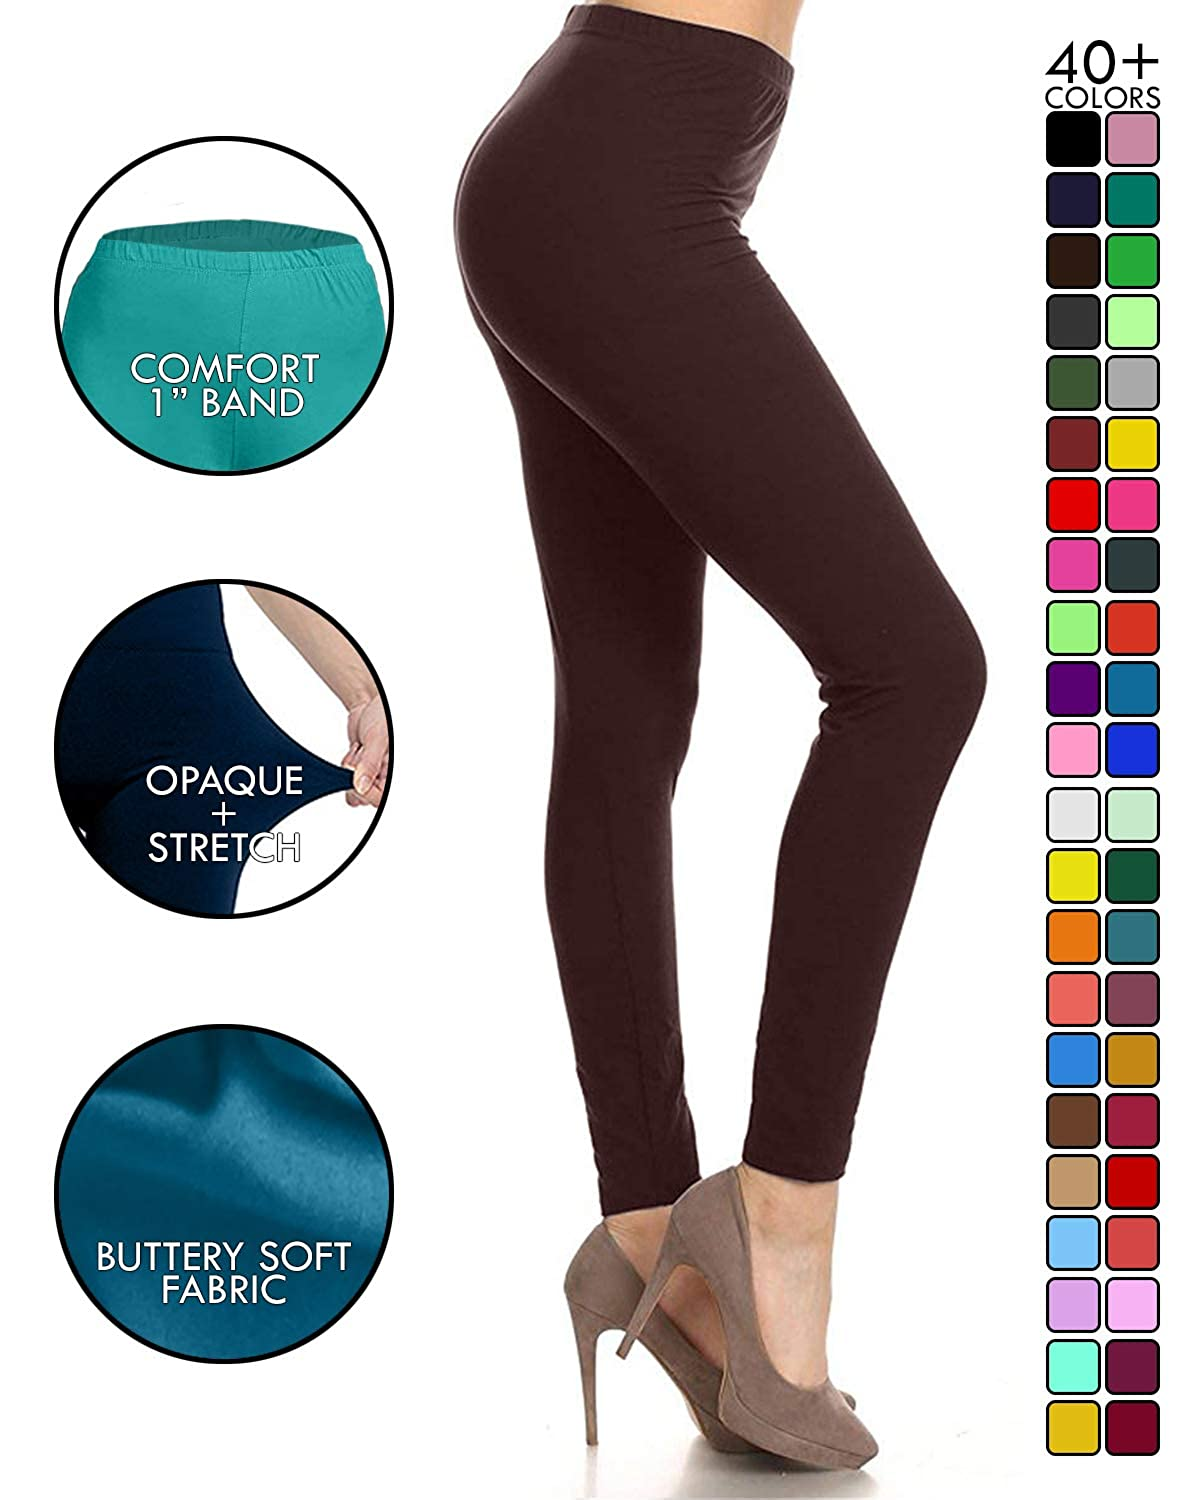 93faf6287f Leggings Depot Buttery Soft Classic Leggings - 42+.